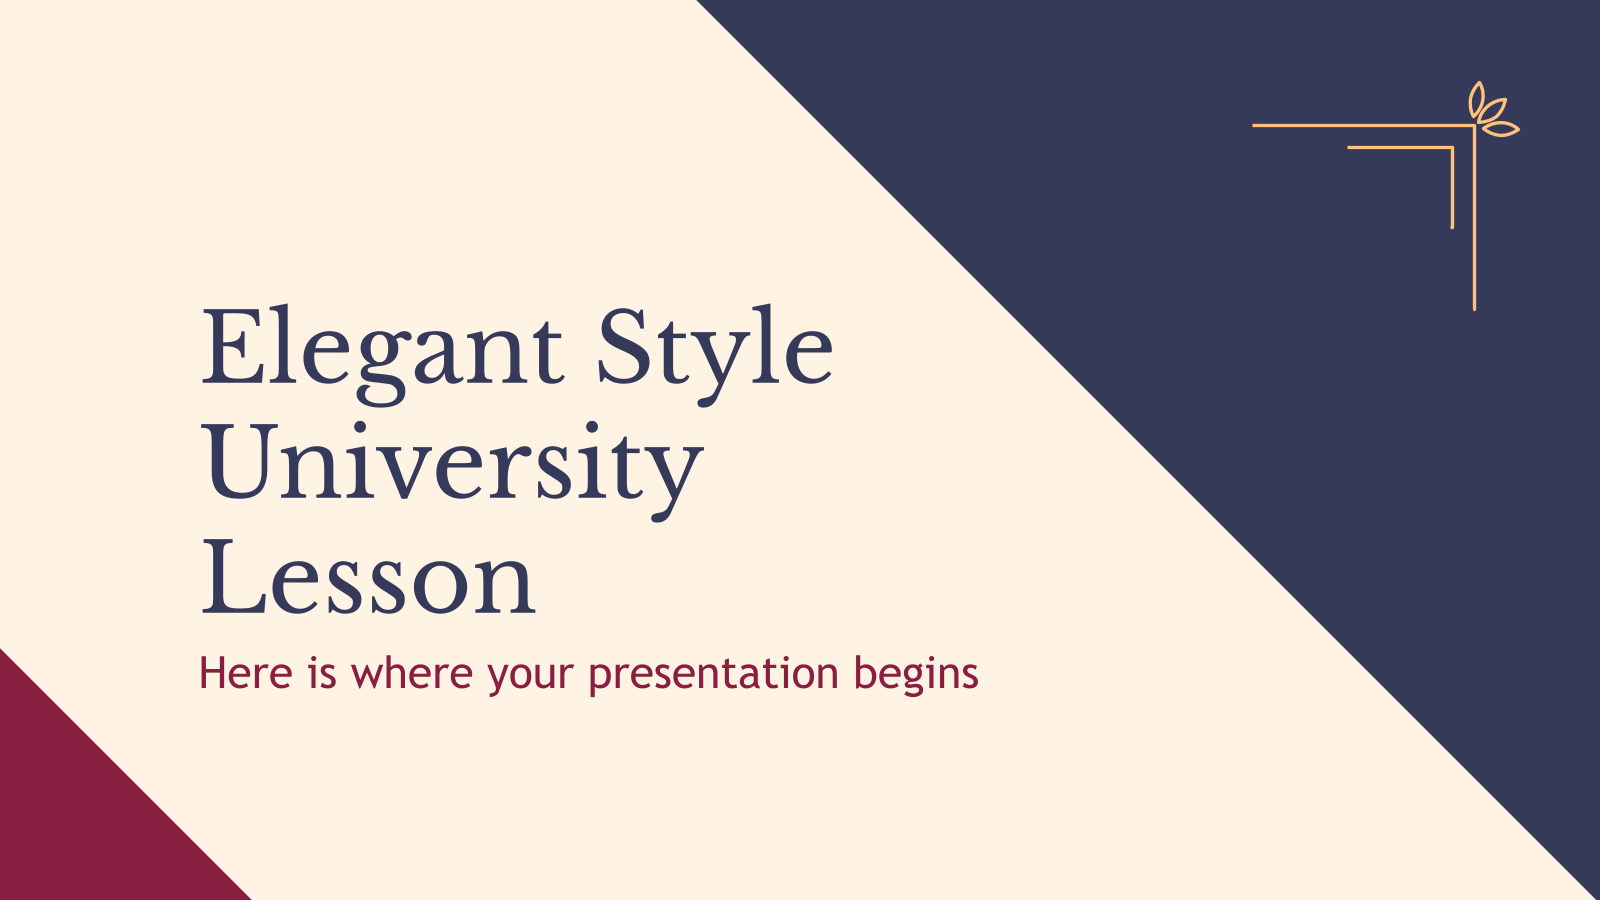 Elegant Style University Lesson presentation template